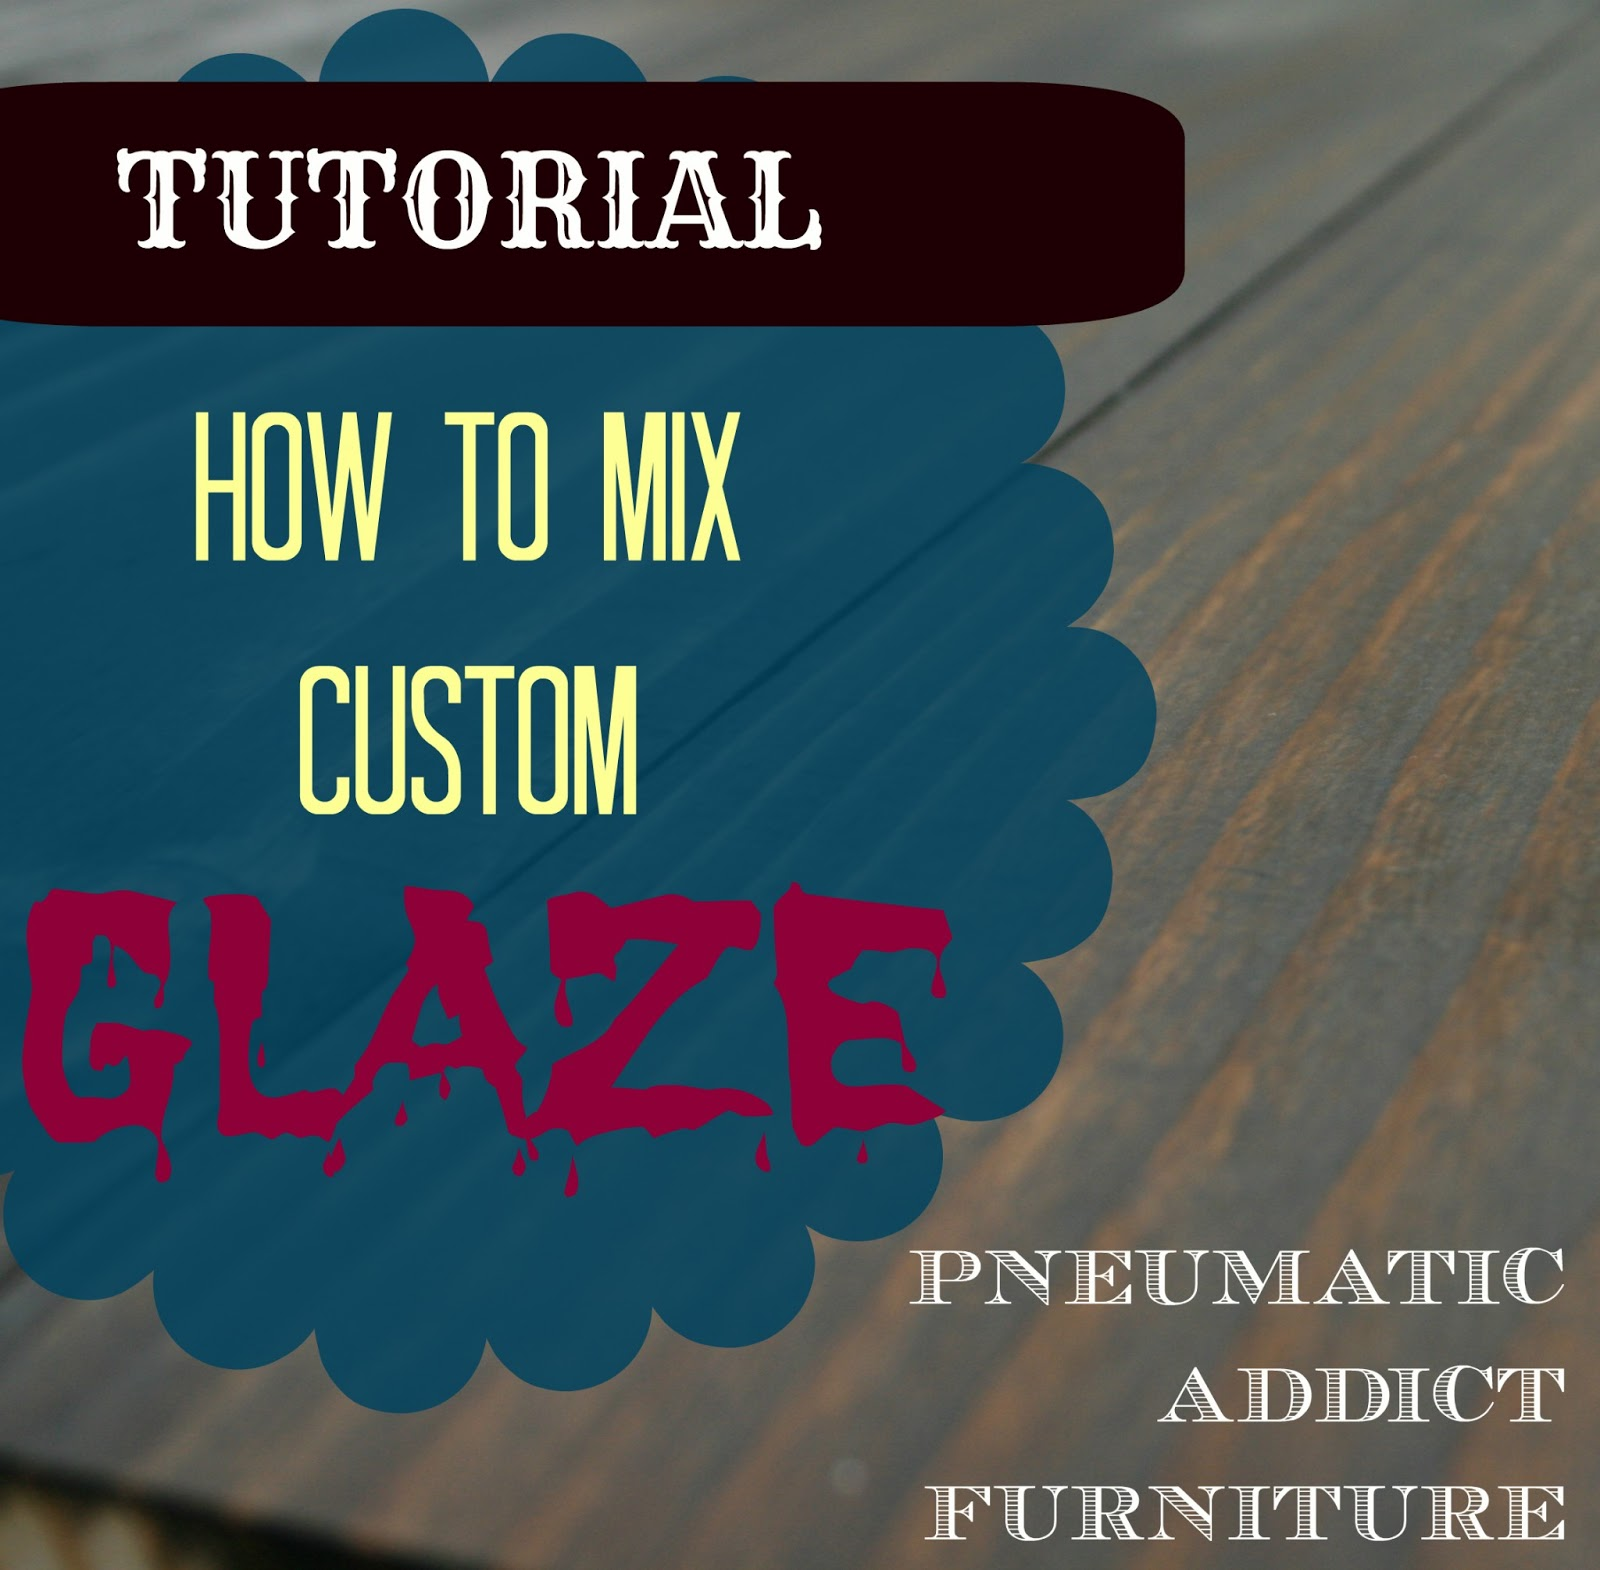 Pneumatic Addict Furniture: Mixing Custom Glaze